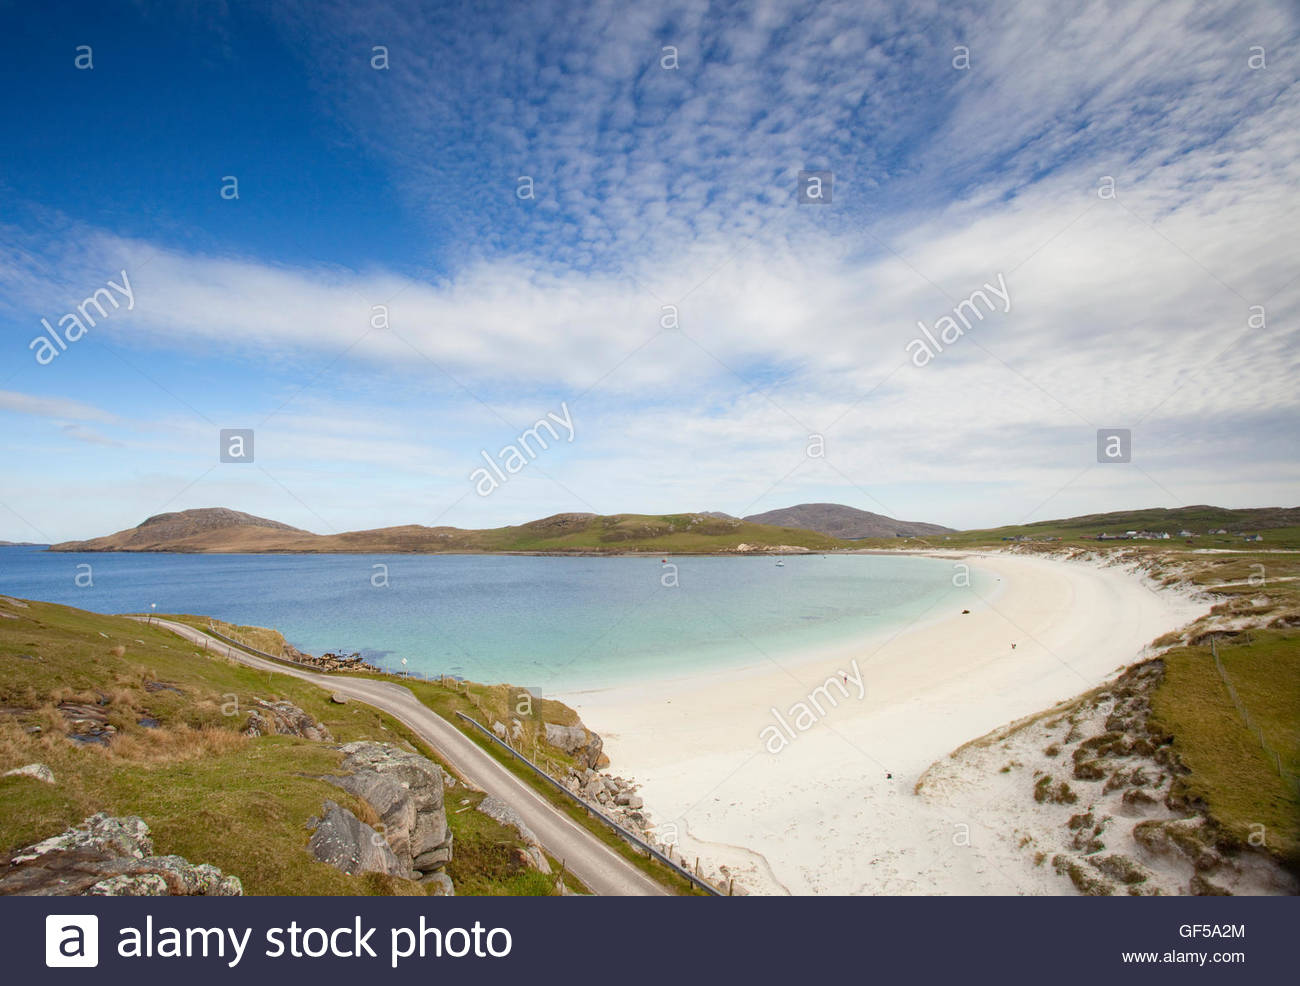 The pristine white sands of East Beach on the Island of Vatersay, Outer Hebrides, Scotland. - Stock Image